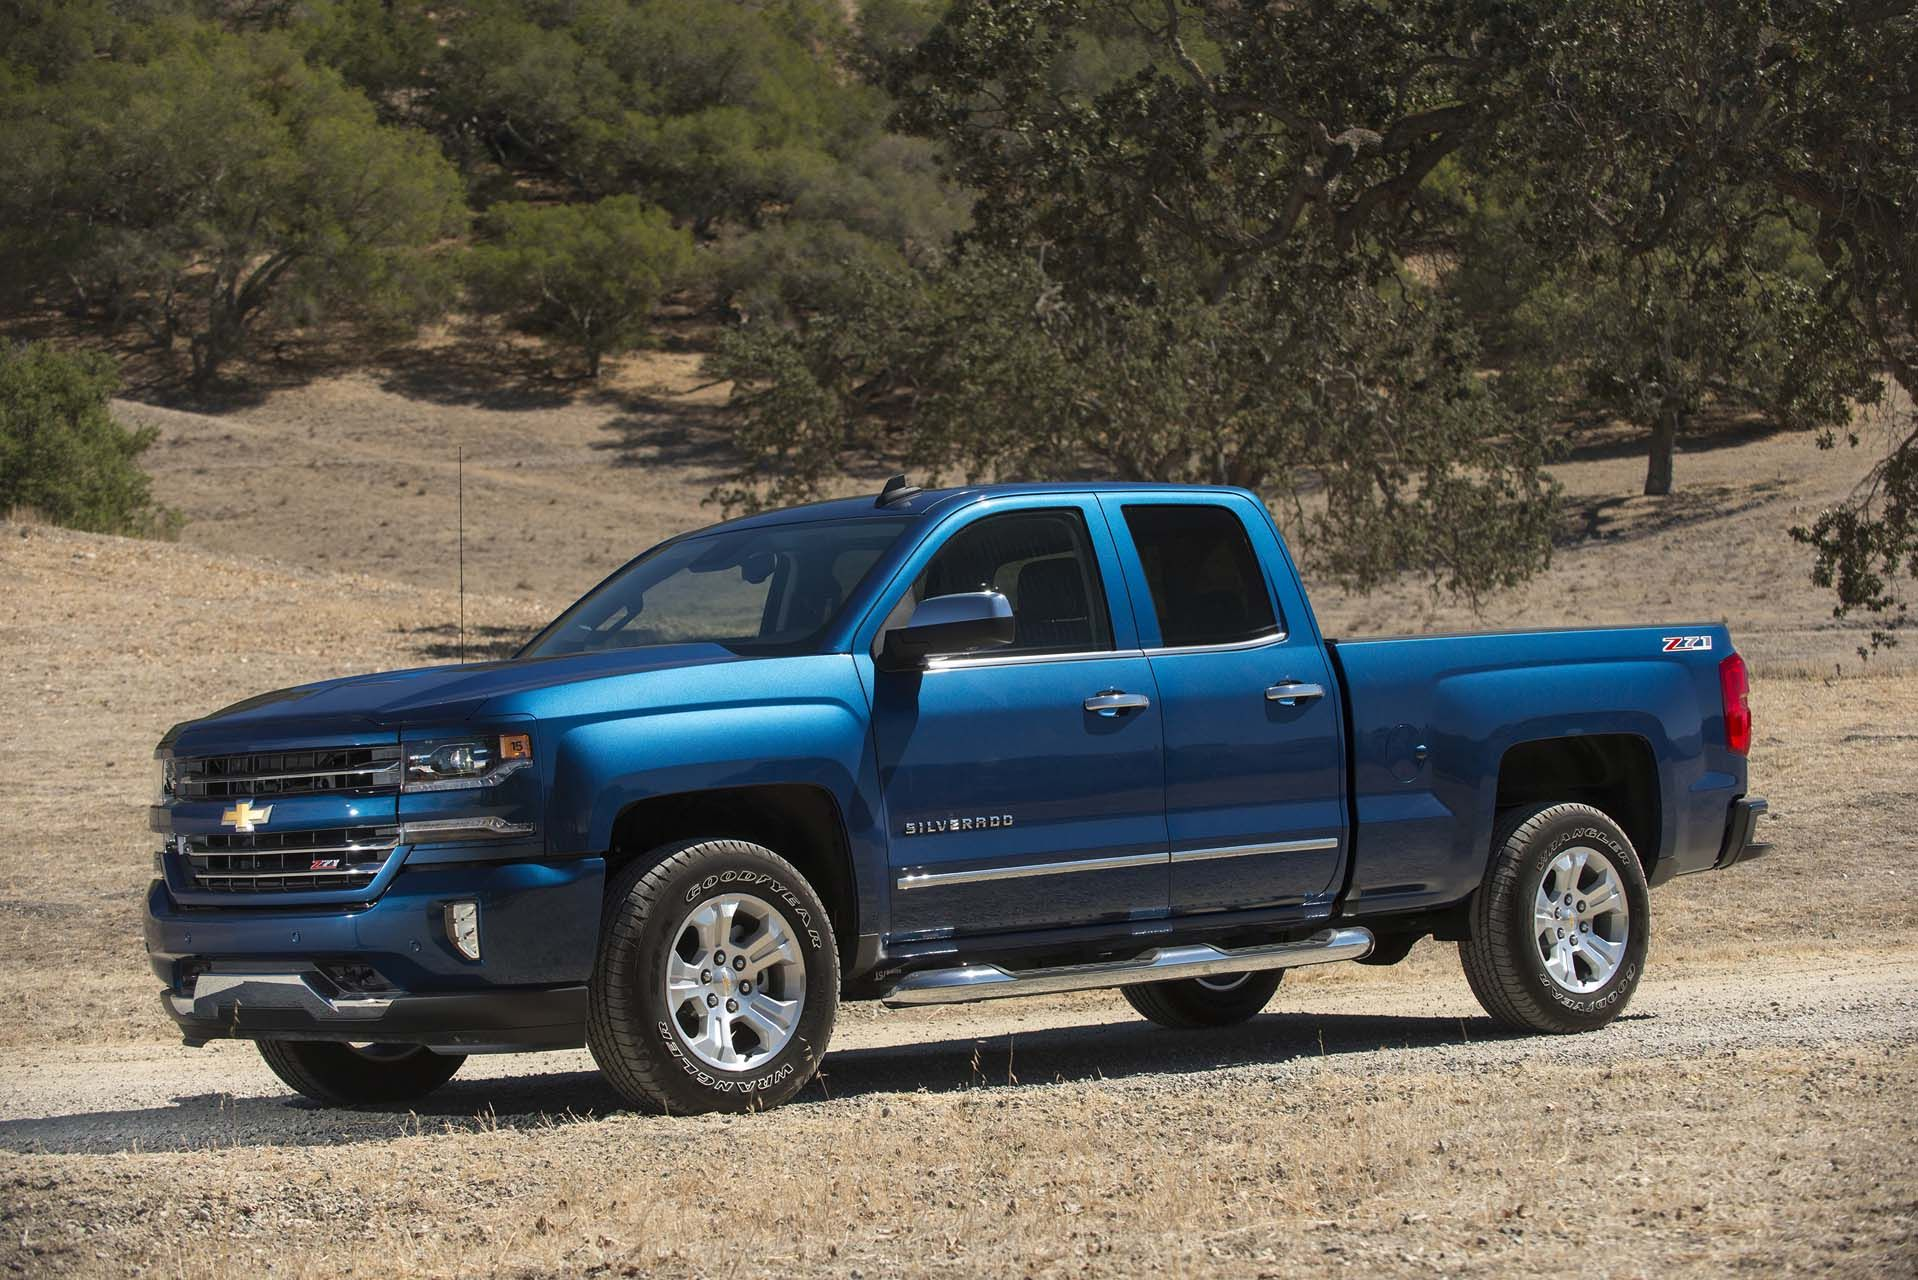 Get the latest reviews of the 2017 chevrolet silverado 1500 find prices buying advice